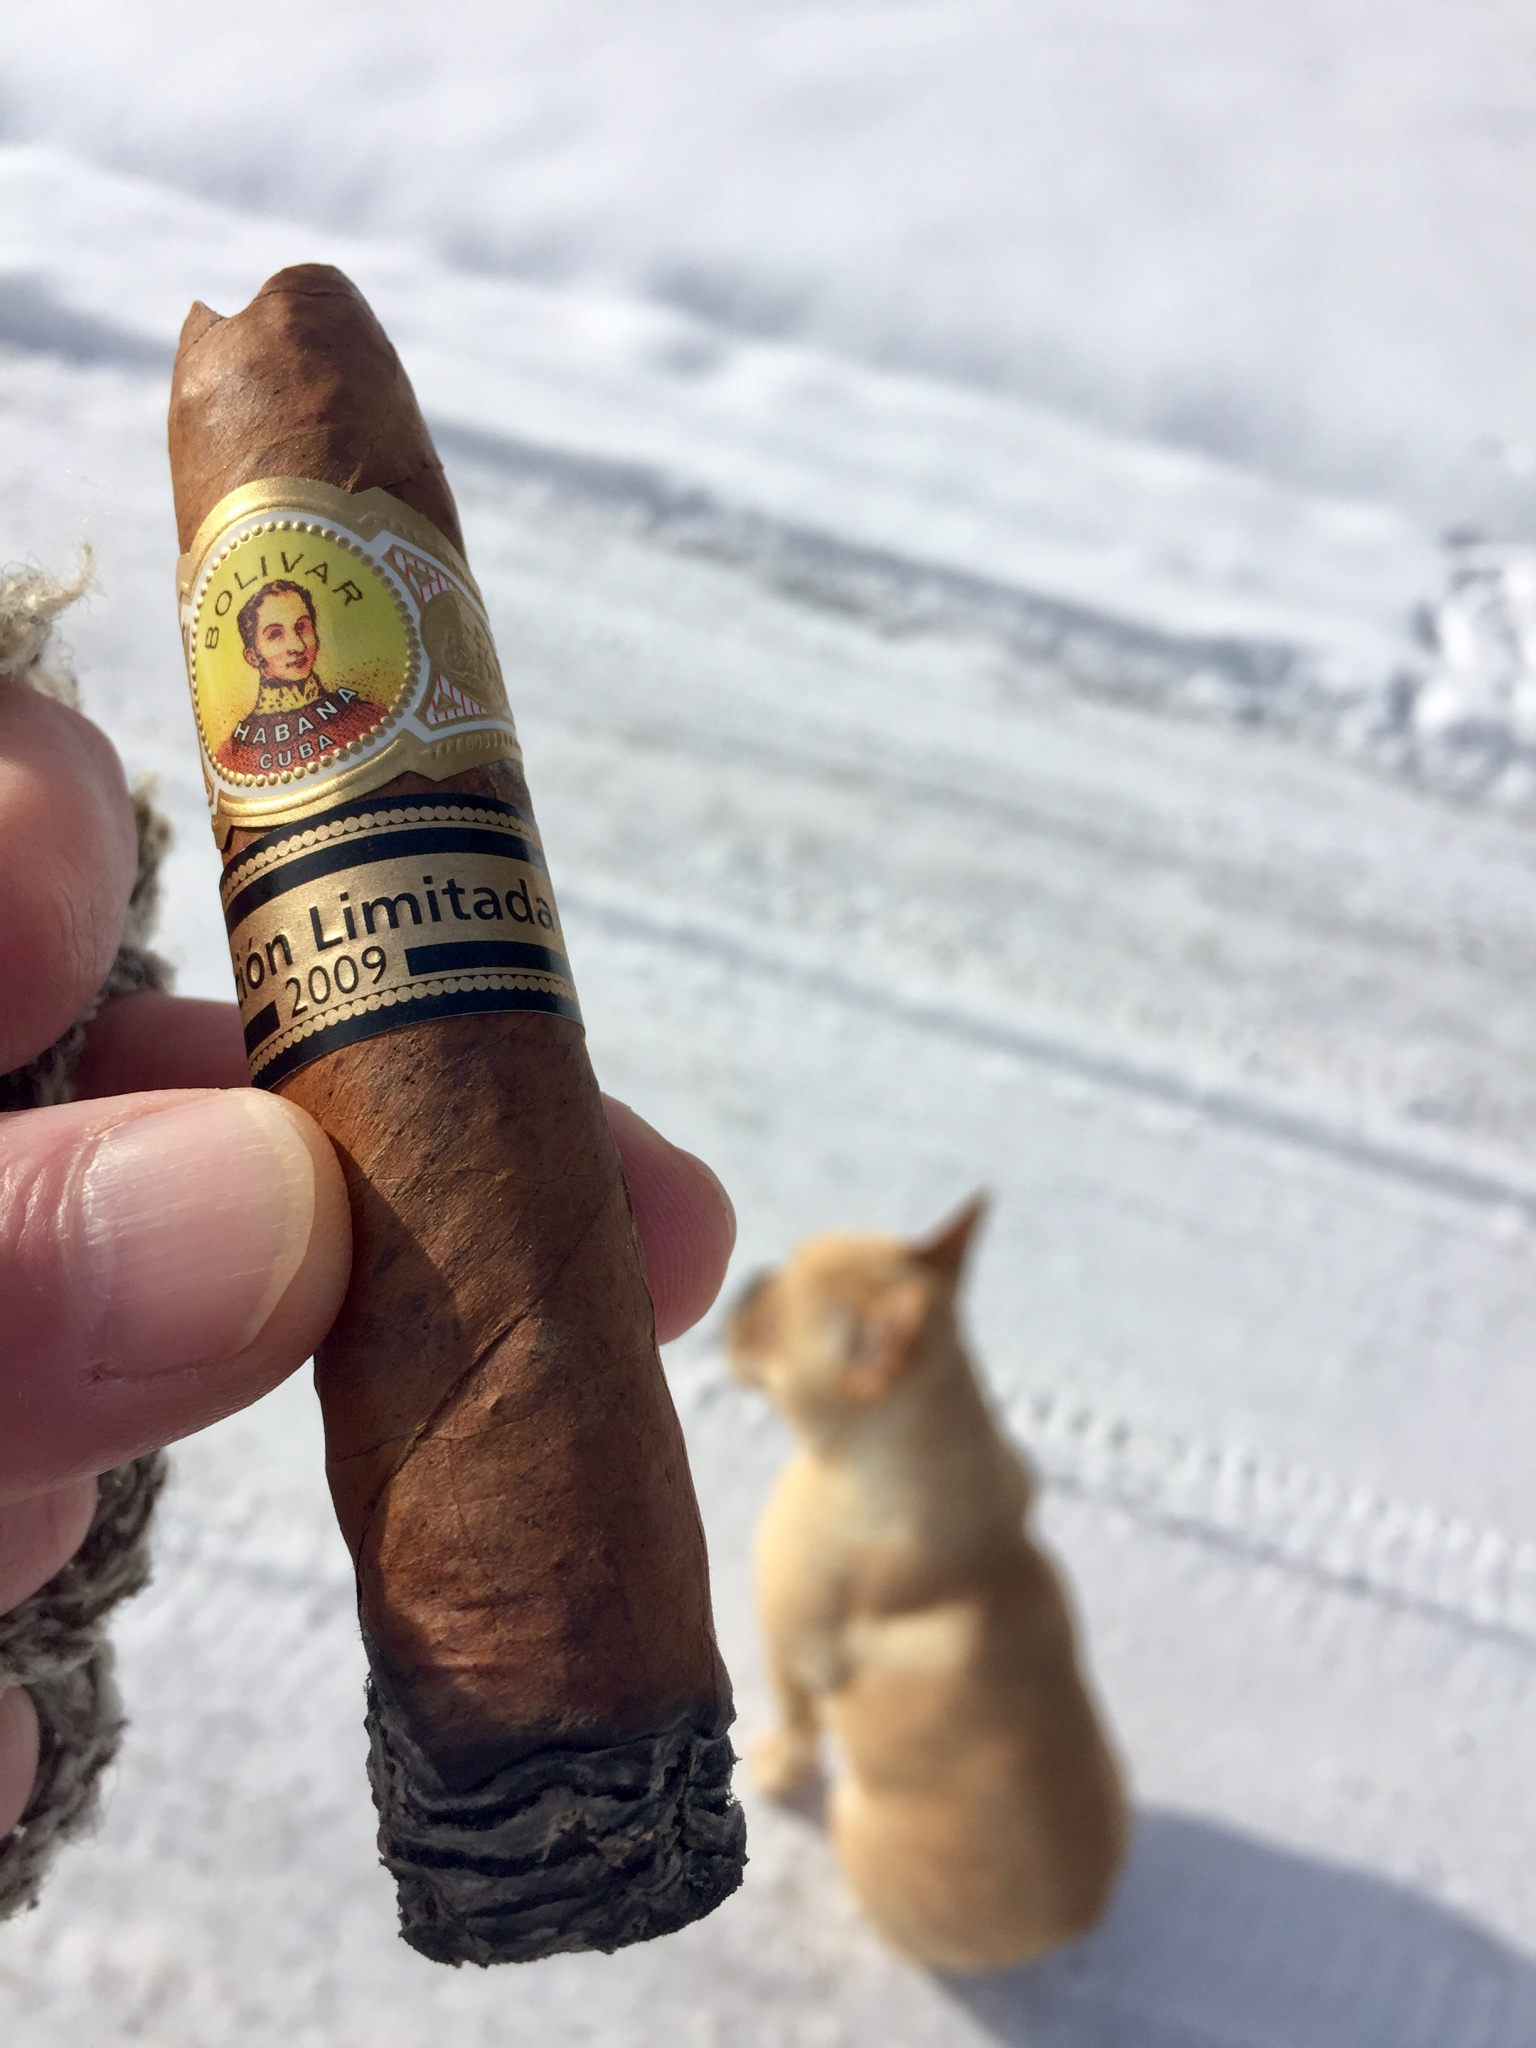 What did you smoke today?  HABANOS ONLY.-5c970015-0437-4d33-b8d4-7ac4302f37cf.jpg